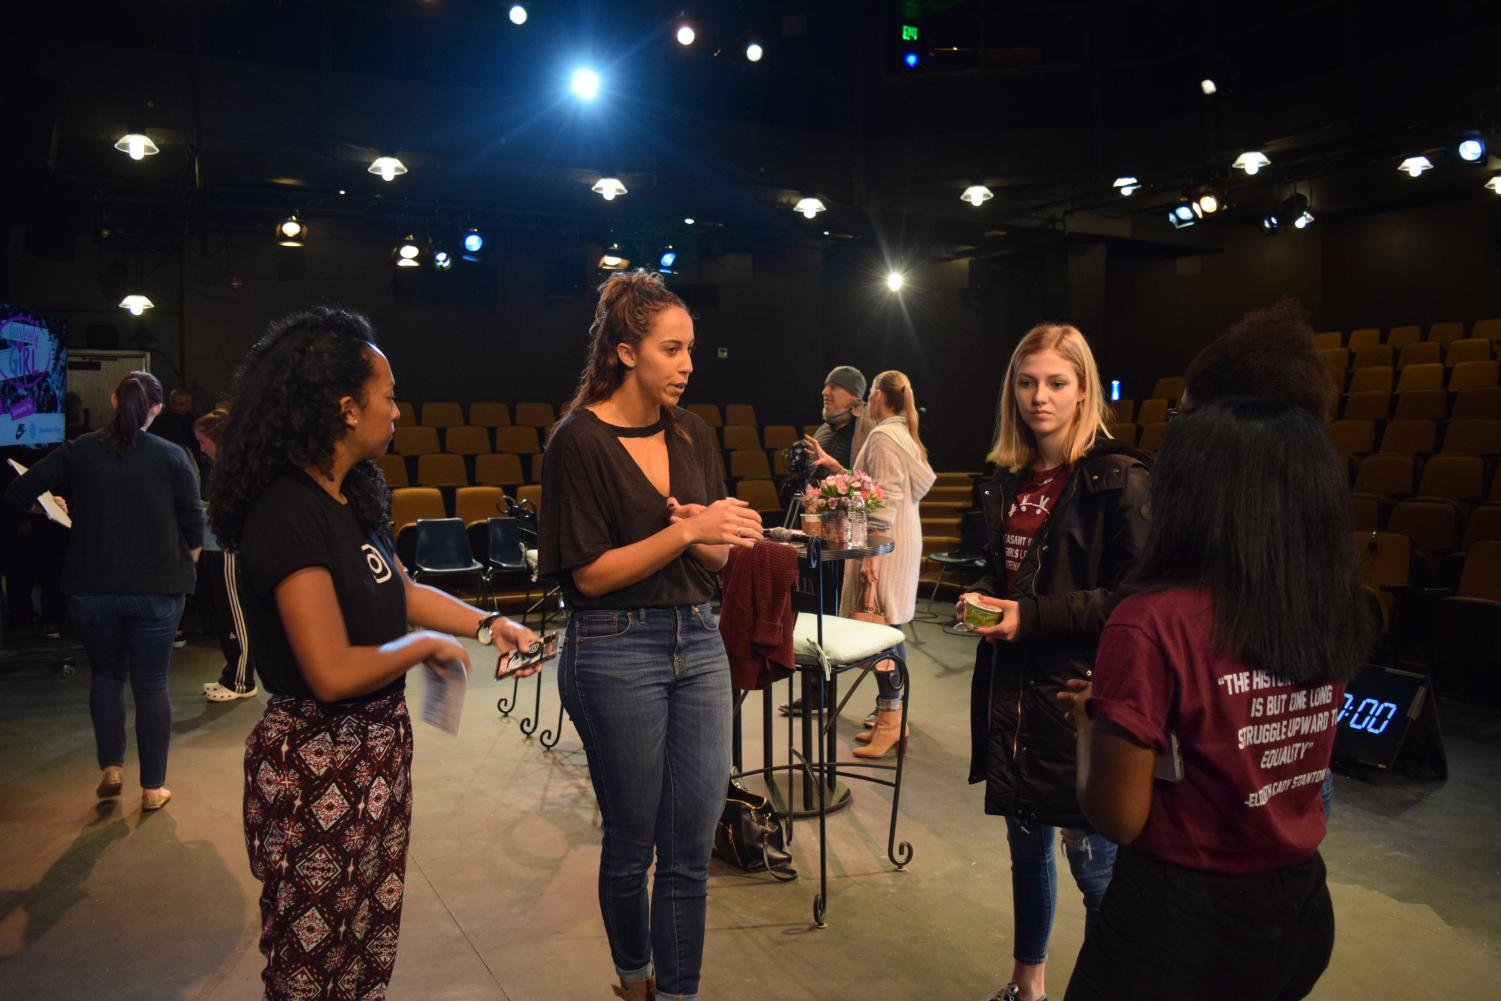 Professional American tennis player Madison Keys converses with Fearlessly Girl girls before show time.